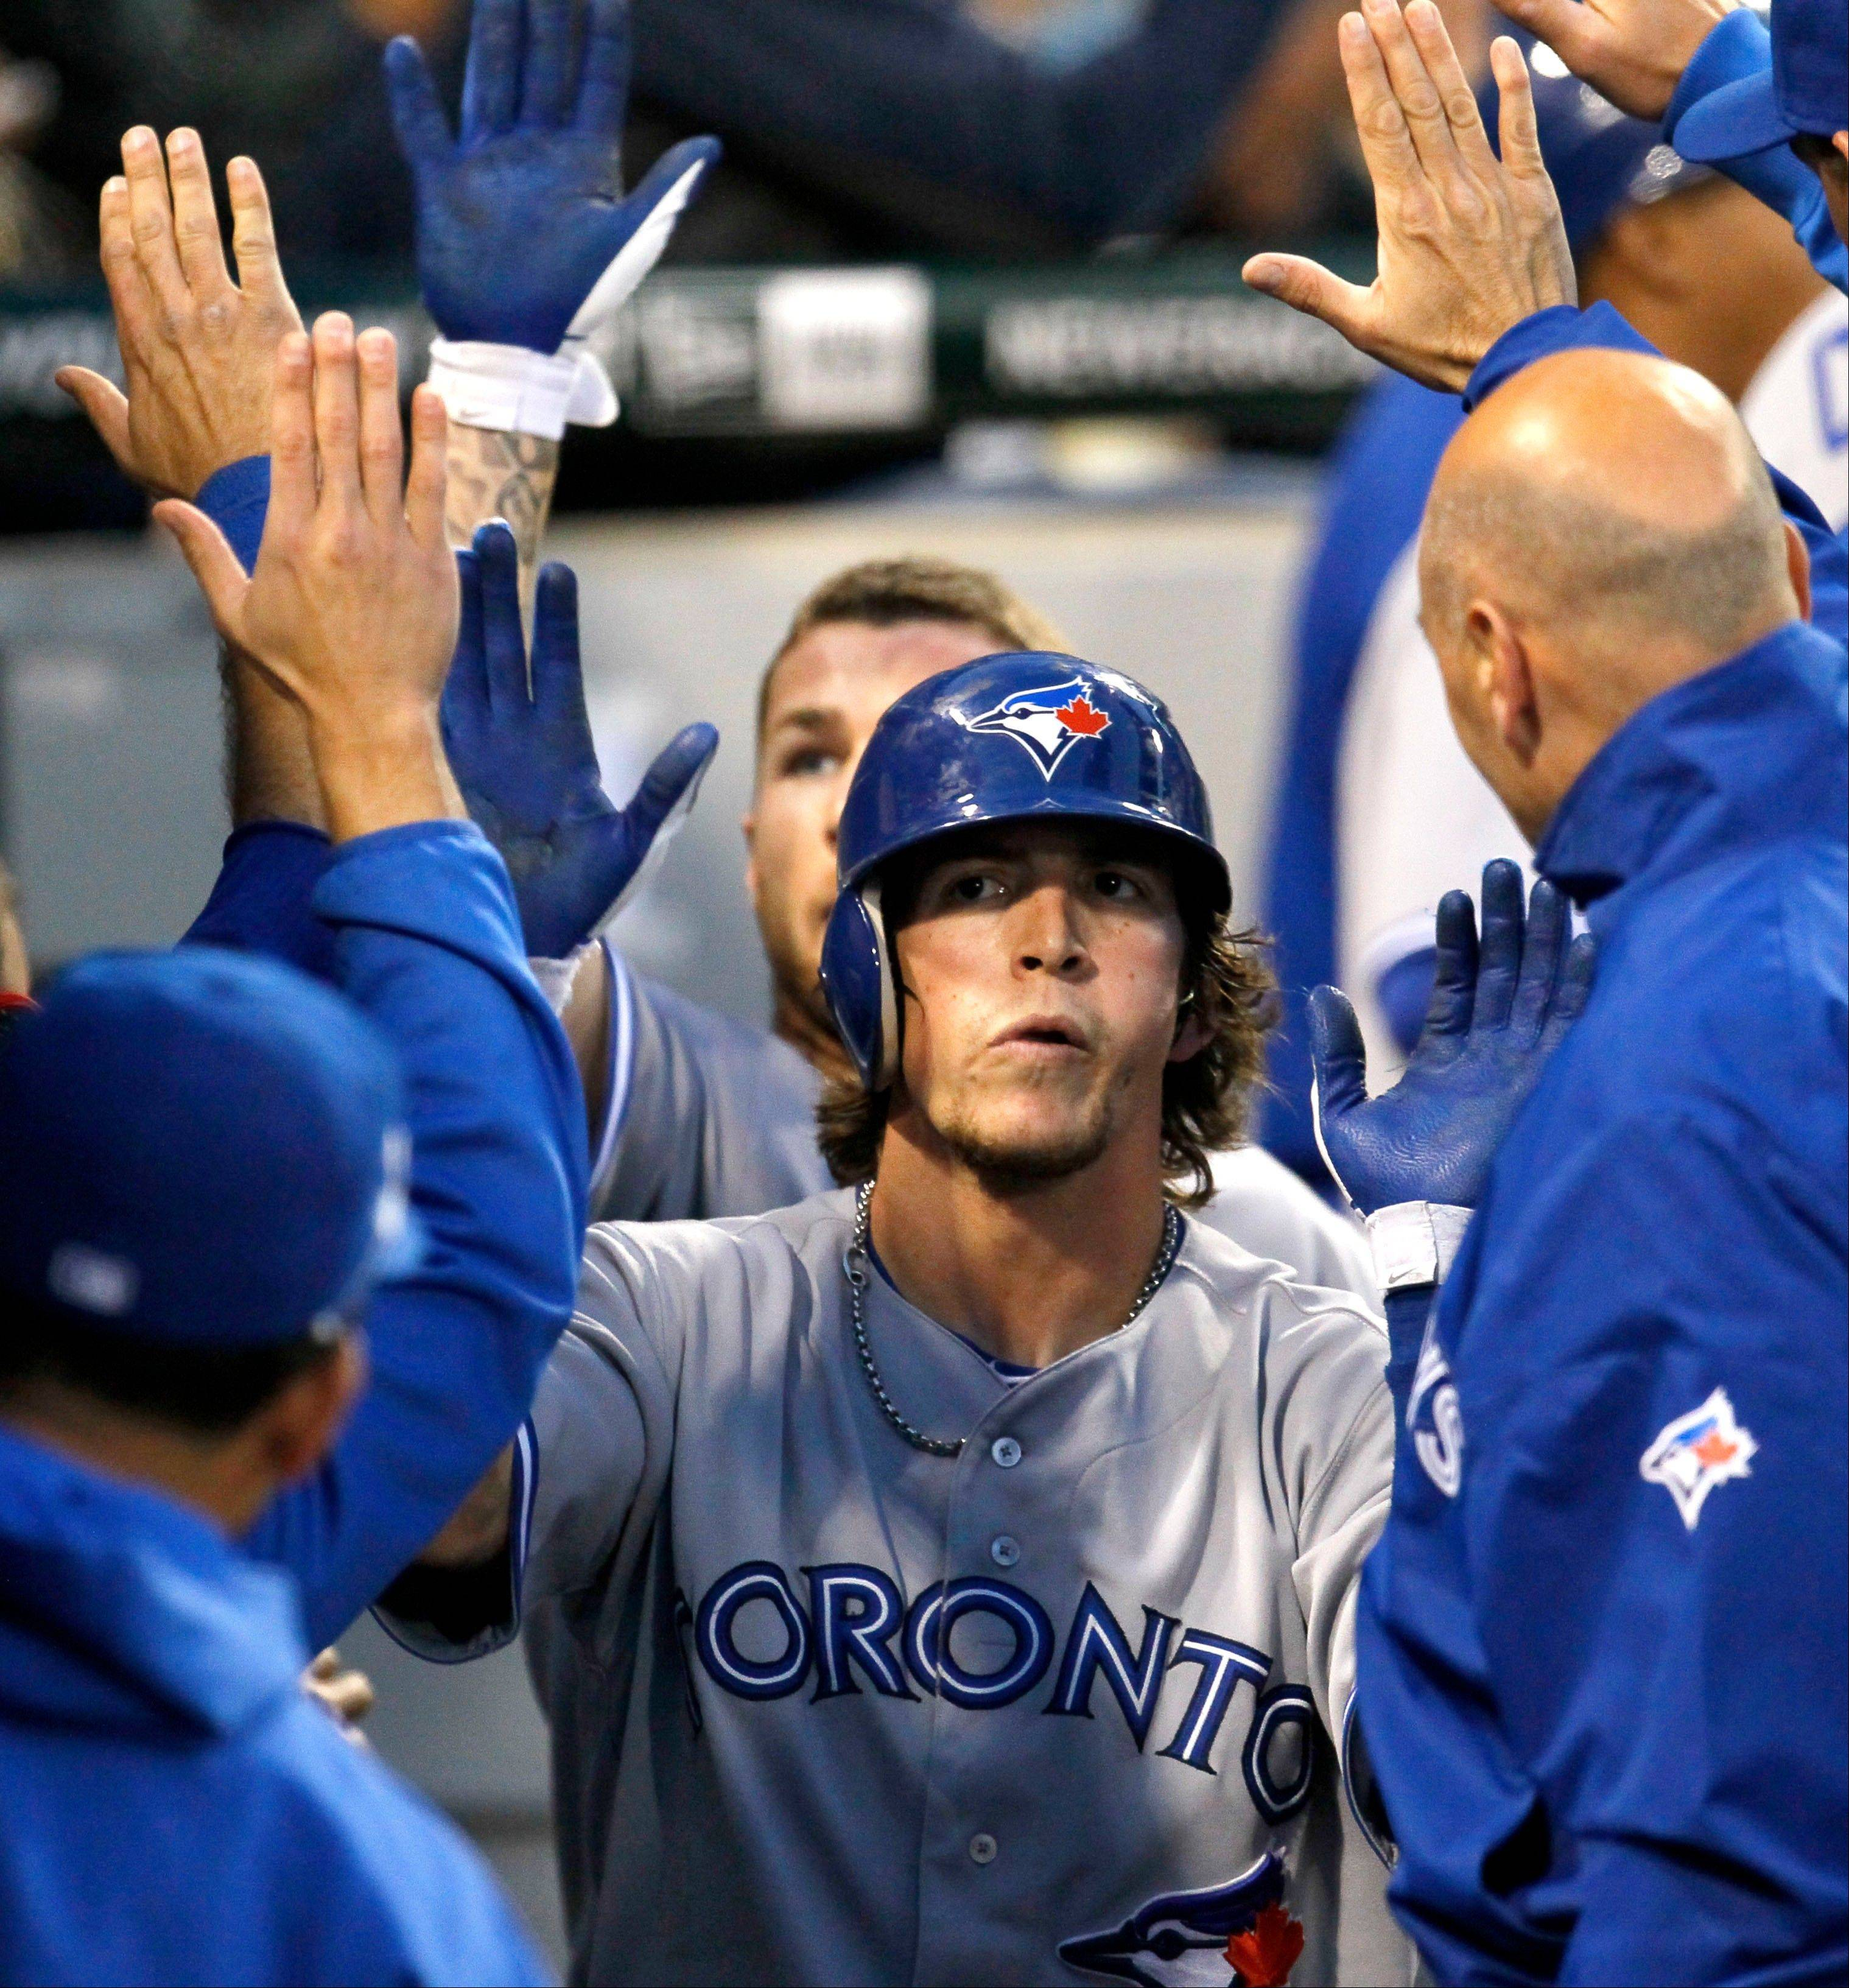 The Blue Jays' Colby Rasmus is greeted in the dugout after hitting the first of a pair of 2-run homers off White Sox starting pitcher Philip Humber in the fifth inning Tuesday night.